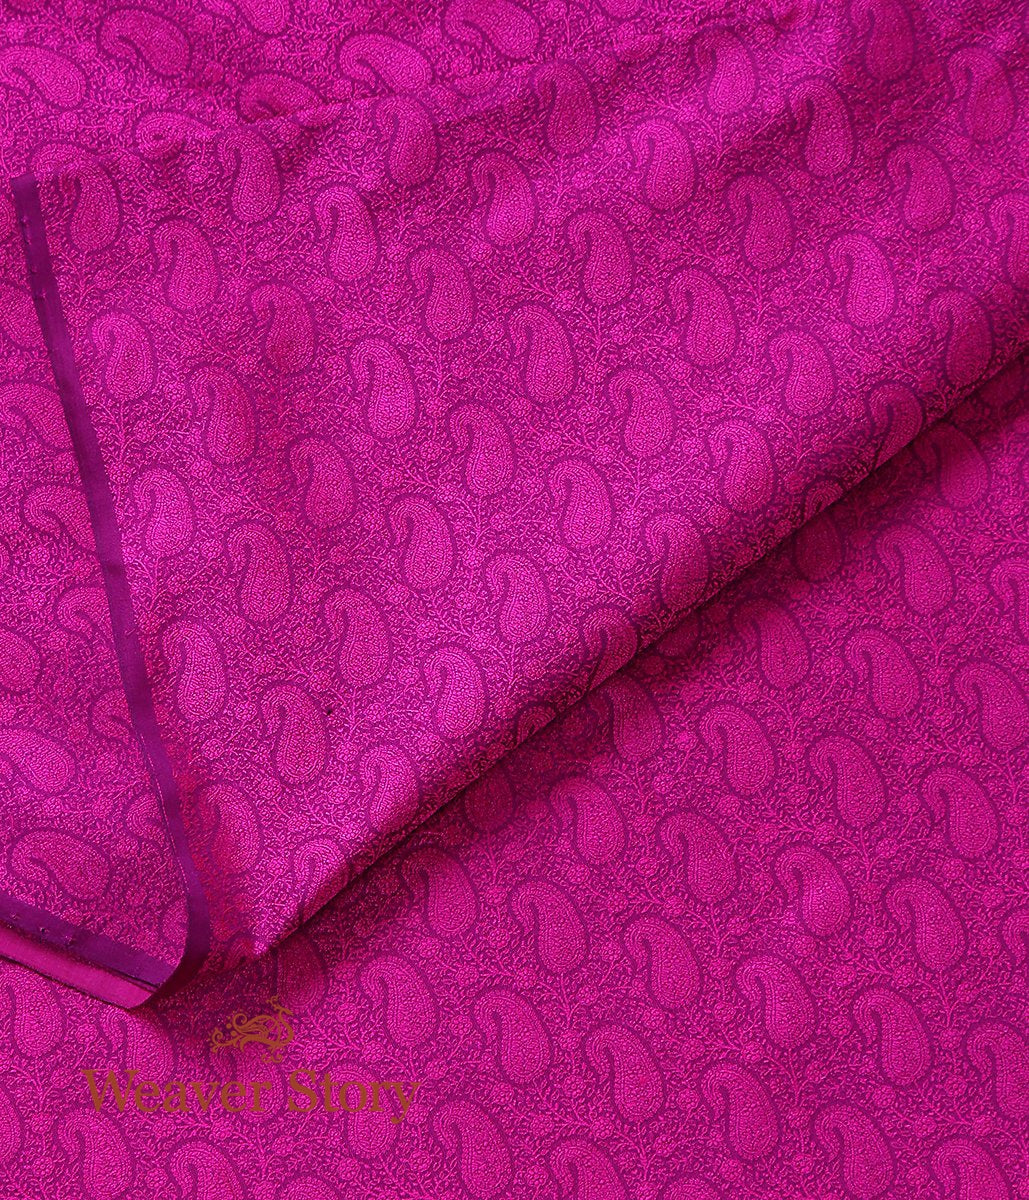 Handwoven Purple and Pink Self Tanchoi Fabric